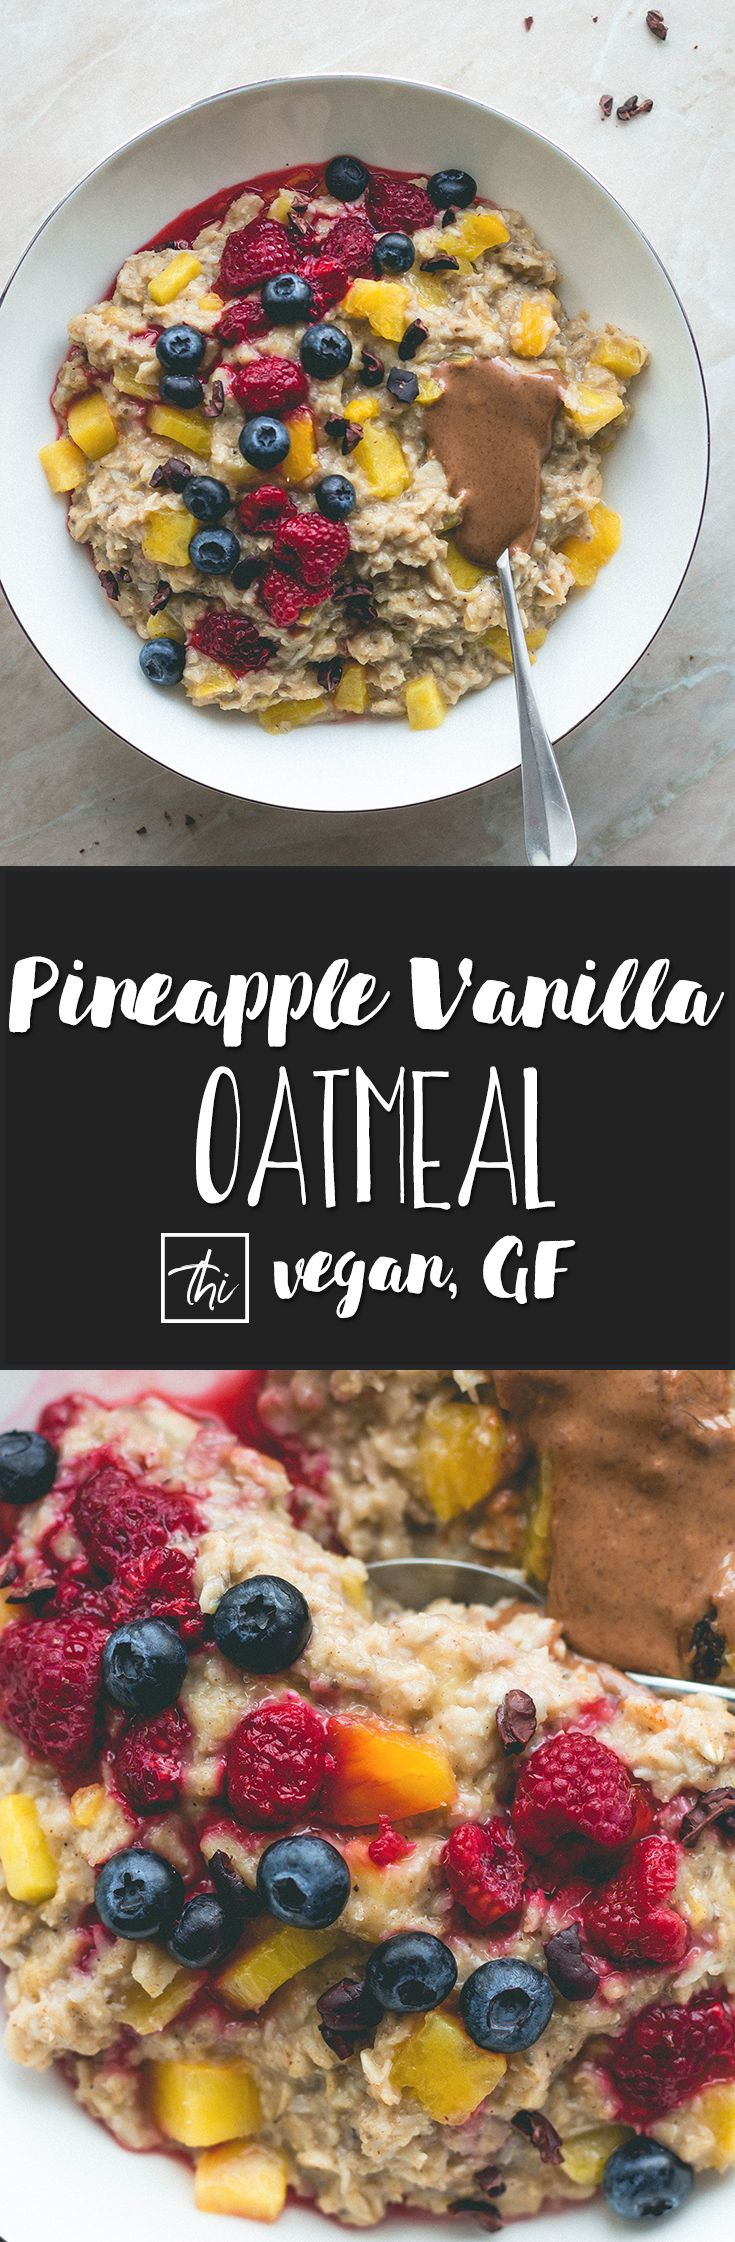 Pineapple Vanilla Oatmeal (vegan, gluten-free) - the best tropical breakfast! Only a few simple ingredients and 15 minutes to make. This pina colada oatmeal is really easy to make and super delicious! You'll love this recipe!   thehealthfulideas.com via @healthfulideas